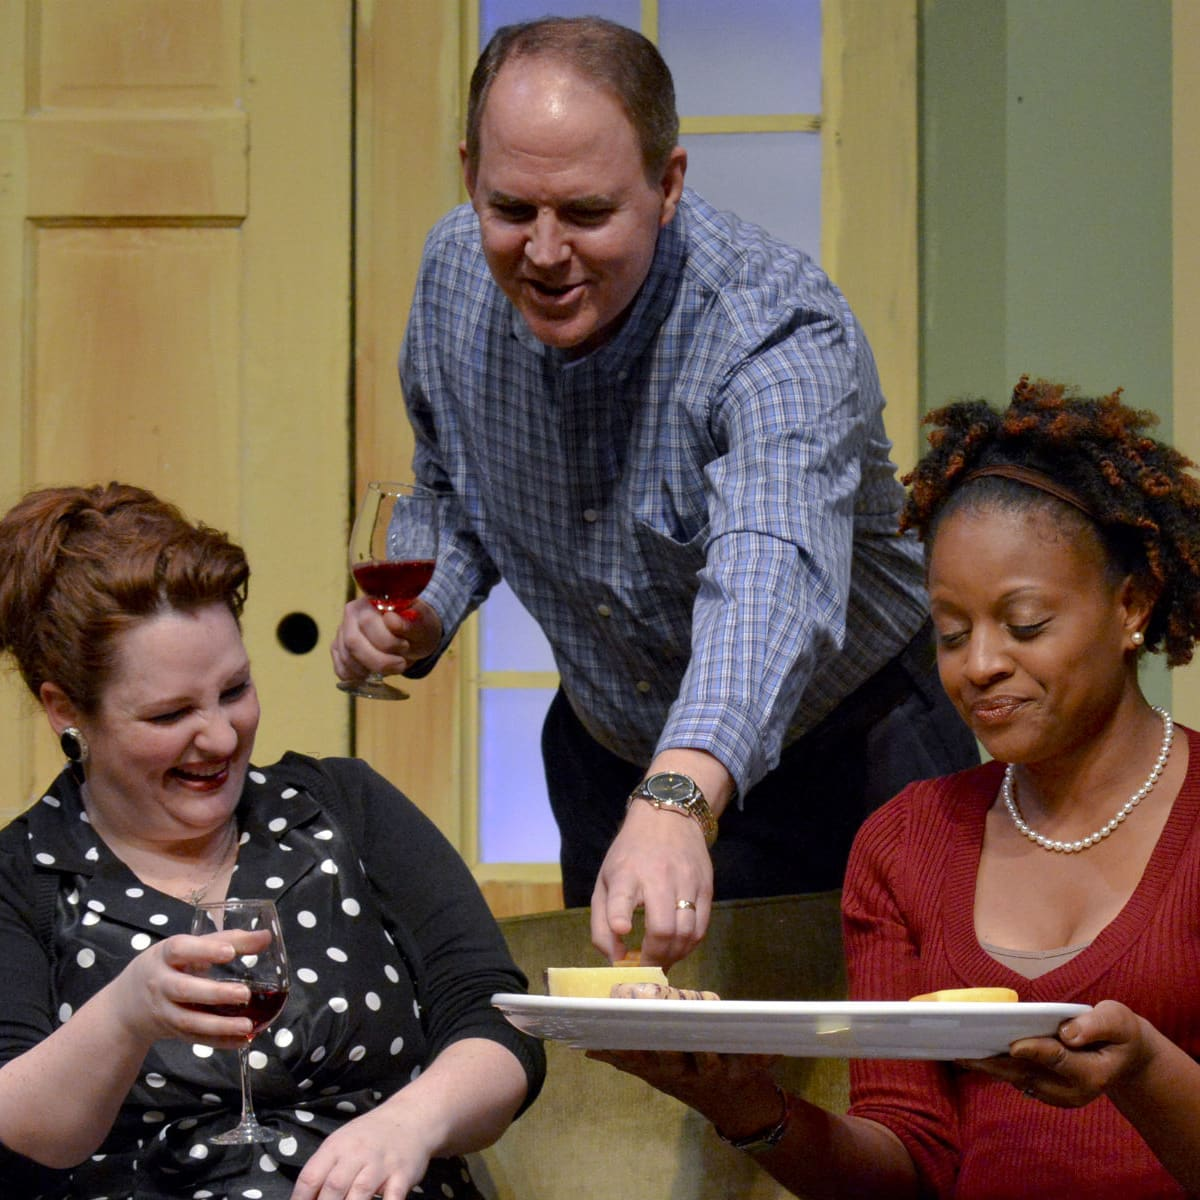 WaterTower Theatre presents Good People